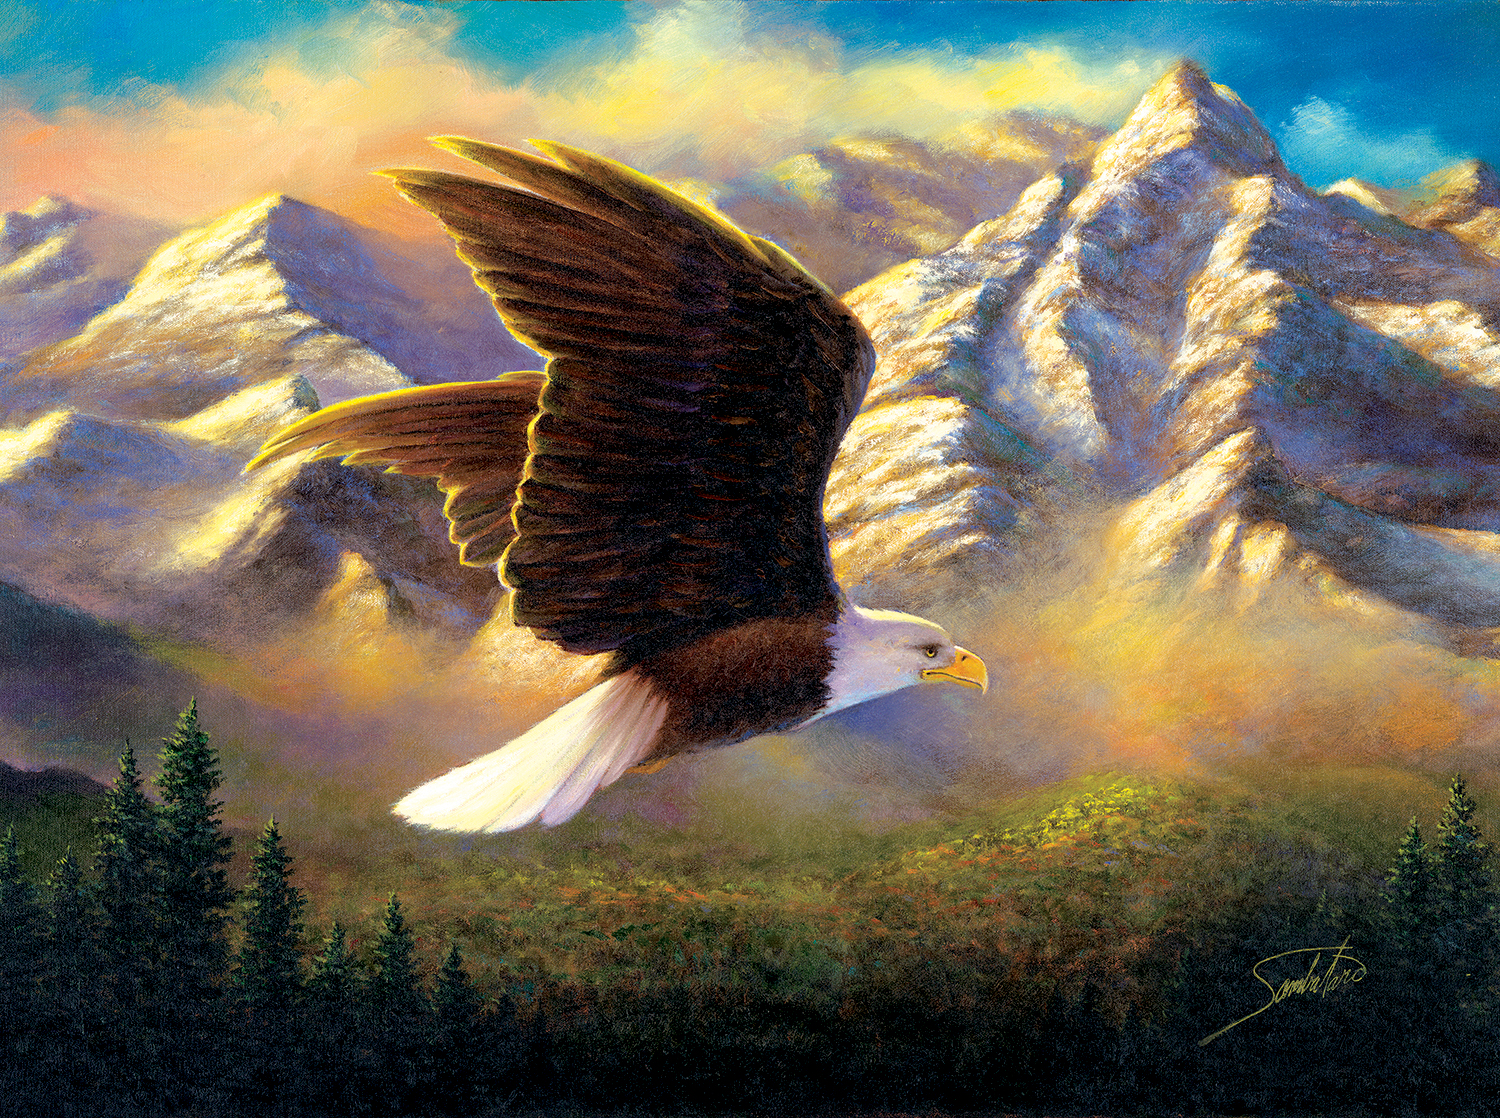 sunsout-abraham-hunter-flying-high-1000-teile-puzzle-sunsout-69636